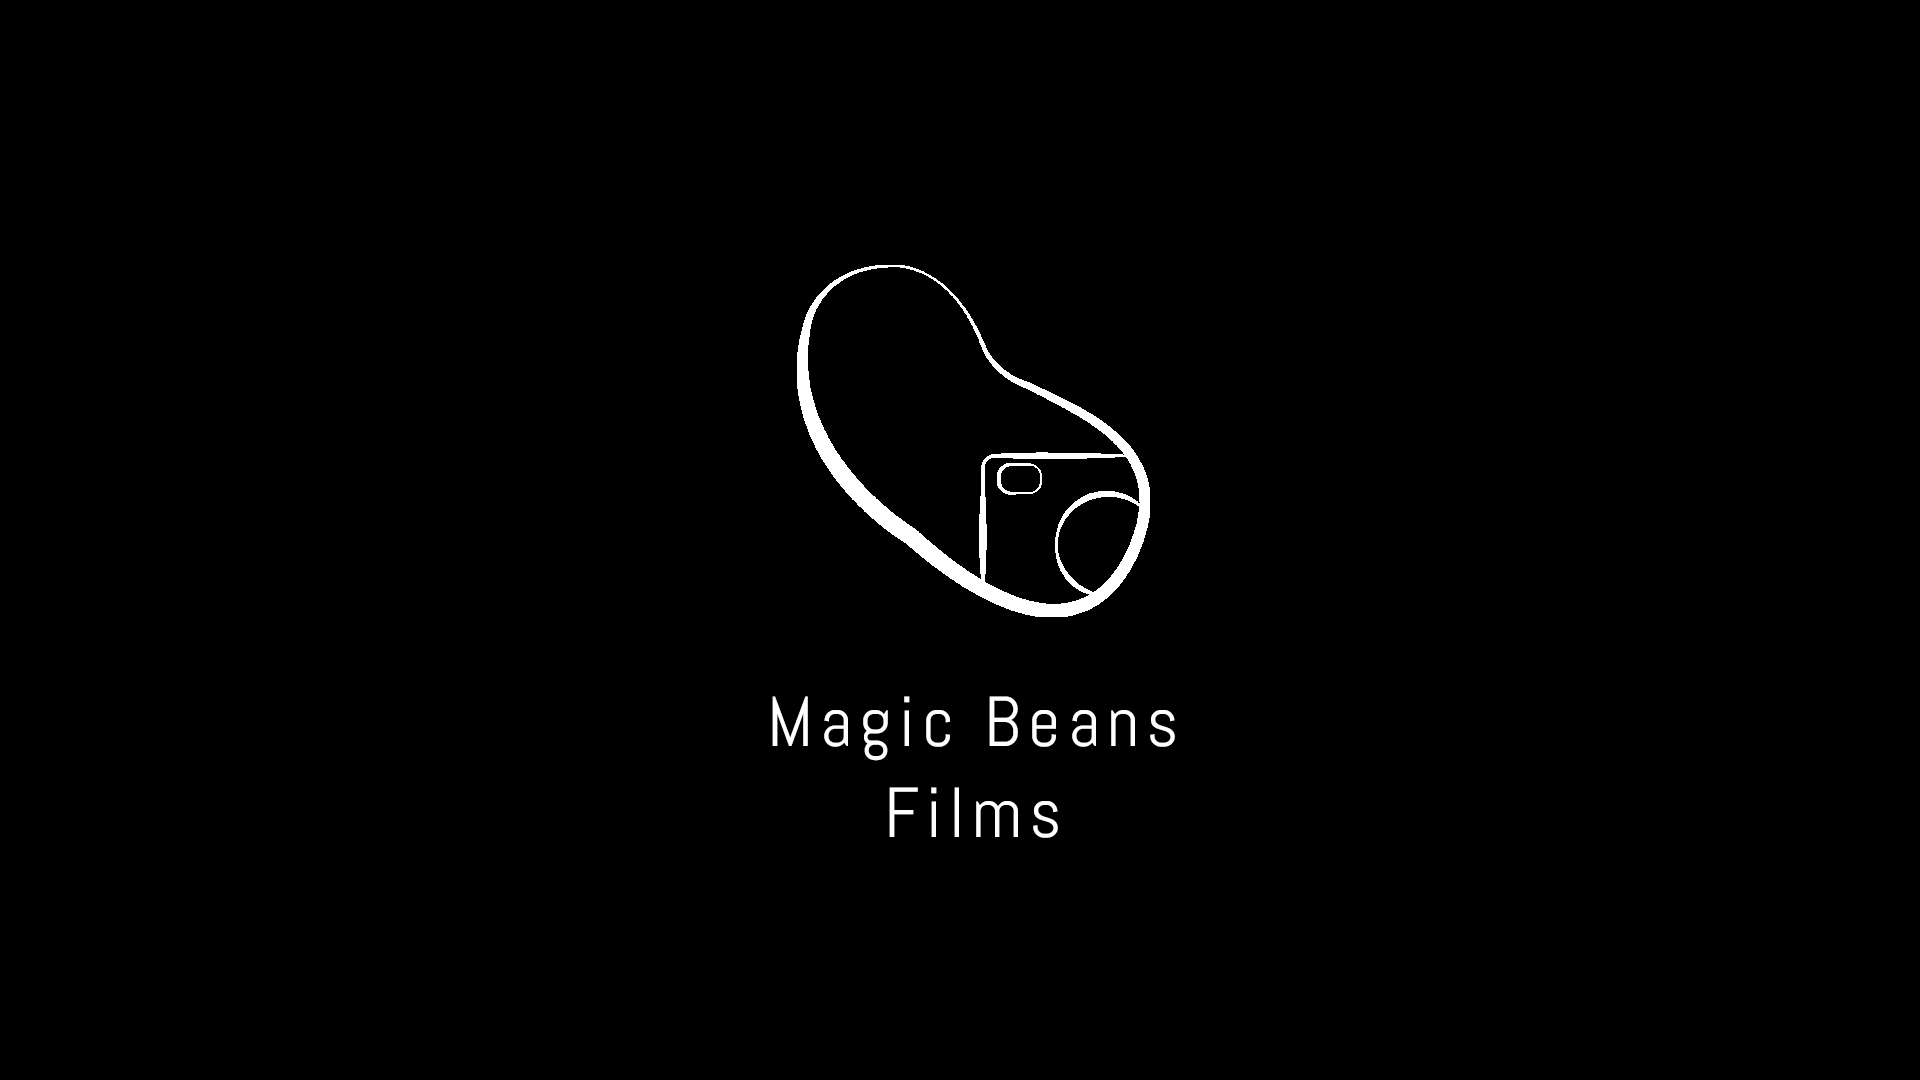 Magic Beans Films - Small production company focused on content creation to inspire to motivate!